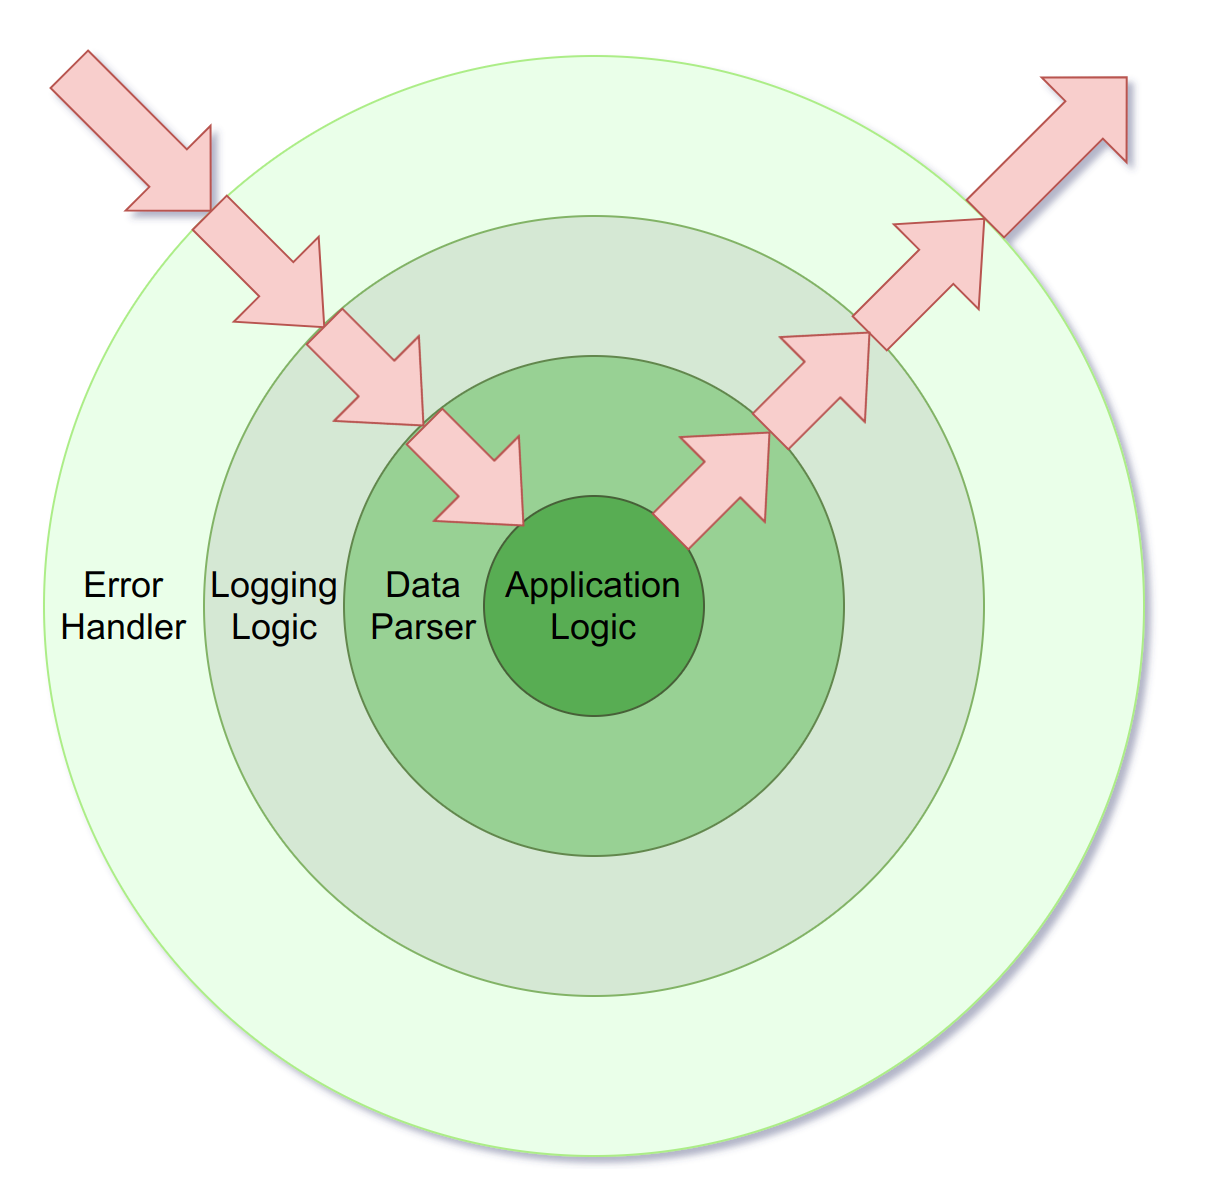 A diagram visualising an application with 3 layers of middleware: an error handler, a logger, and a data parser - with the application  logic in the middle. Arrows show that a request makes its way through these layers of middleware both on the way in, and the way out.